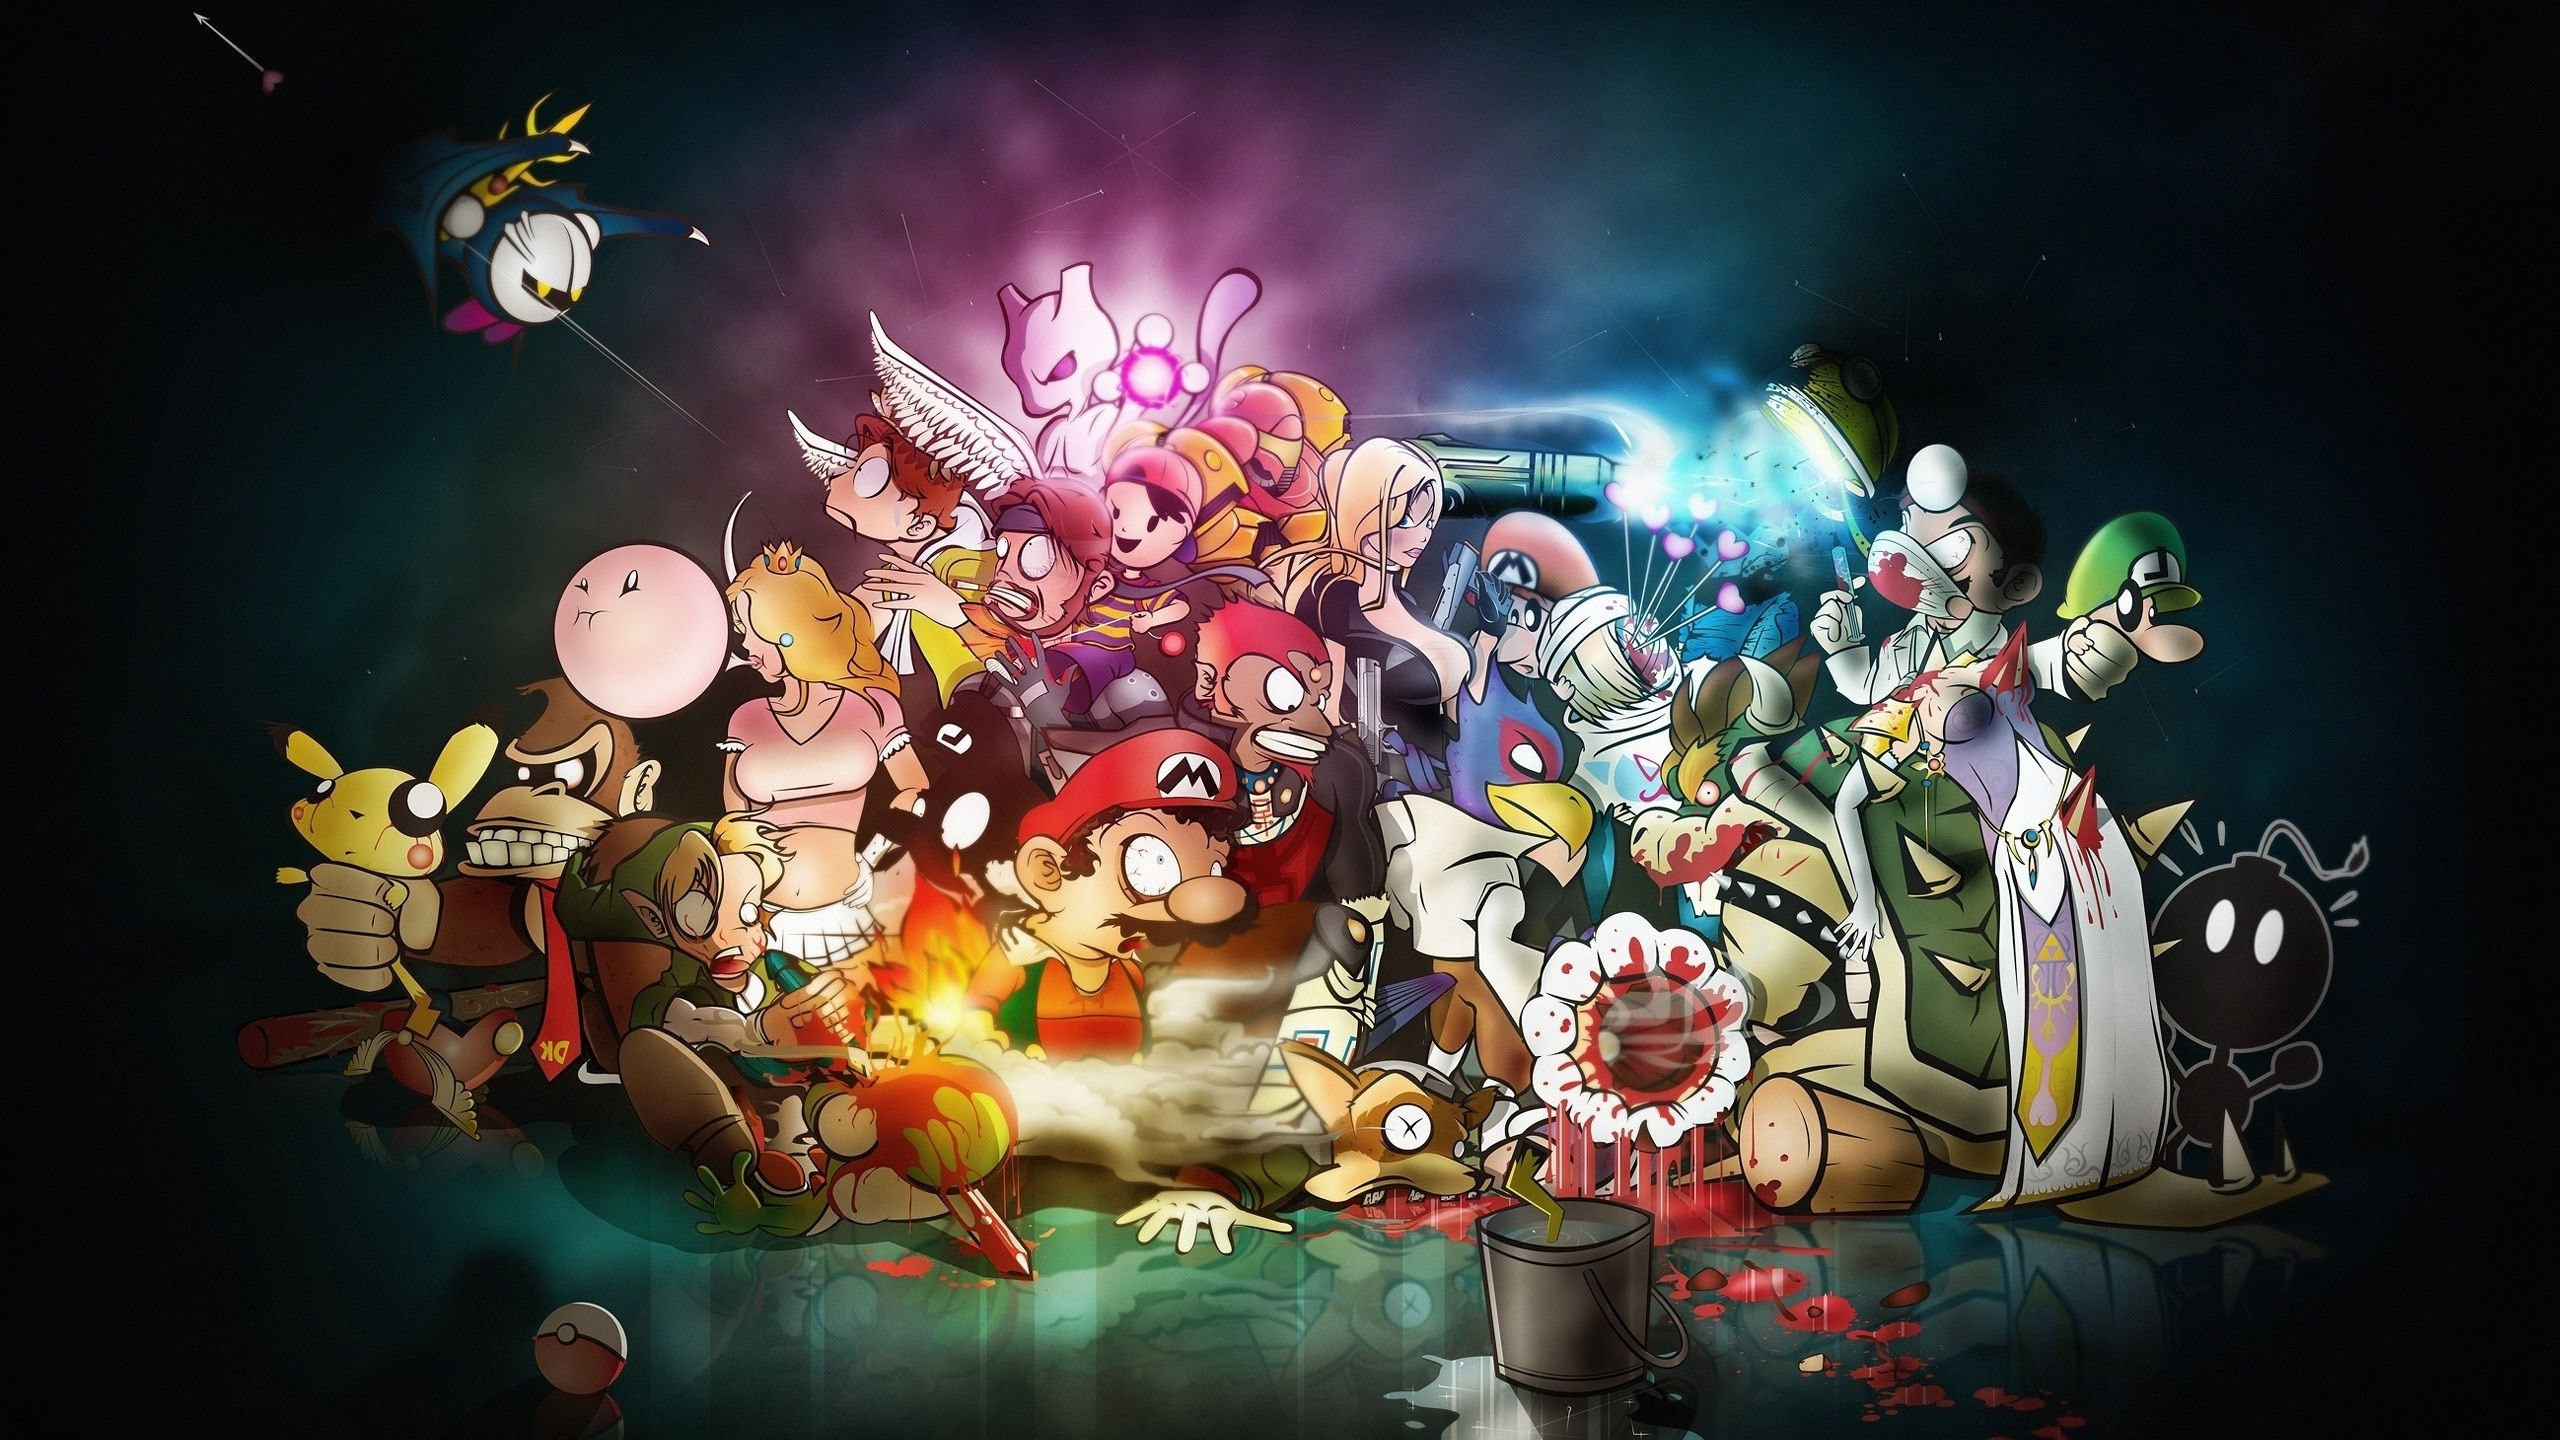 Title Awesome Video Game Wallpaper Mashups 72 Images Dimension 2560 X 1440 File Type JPG JPEG